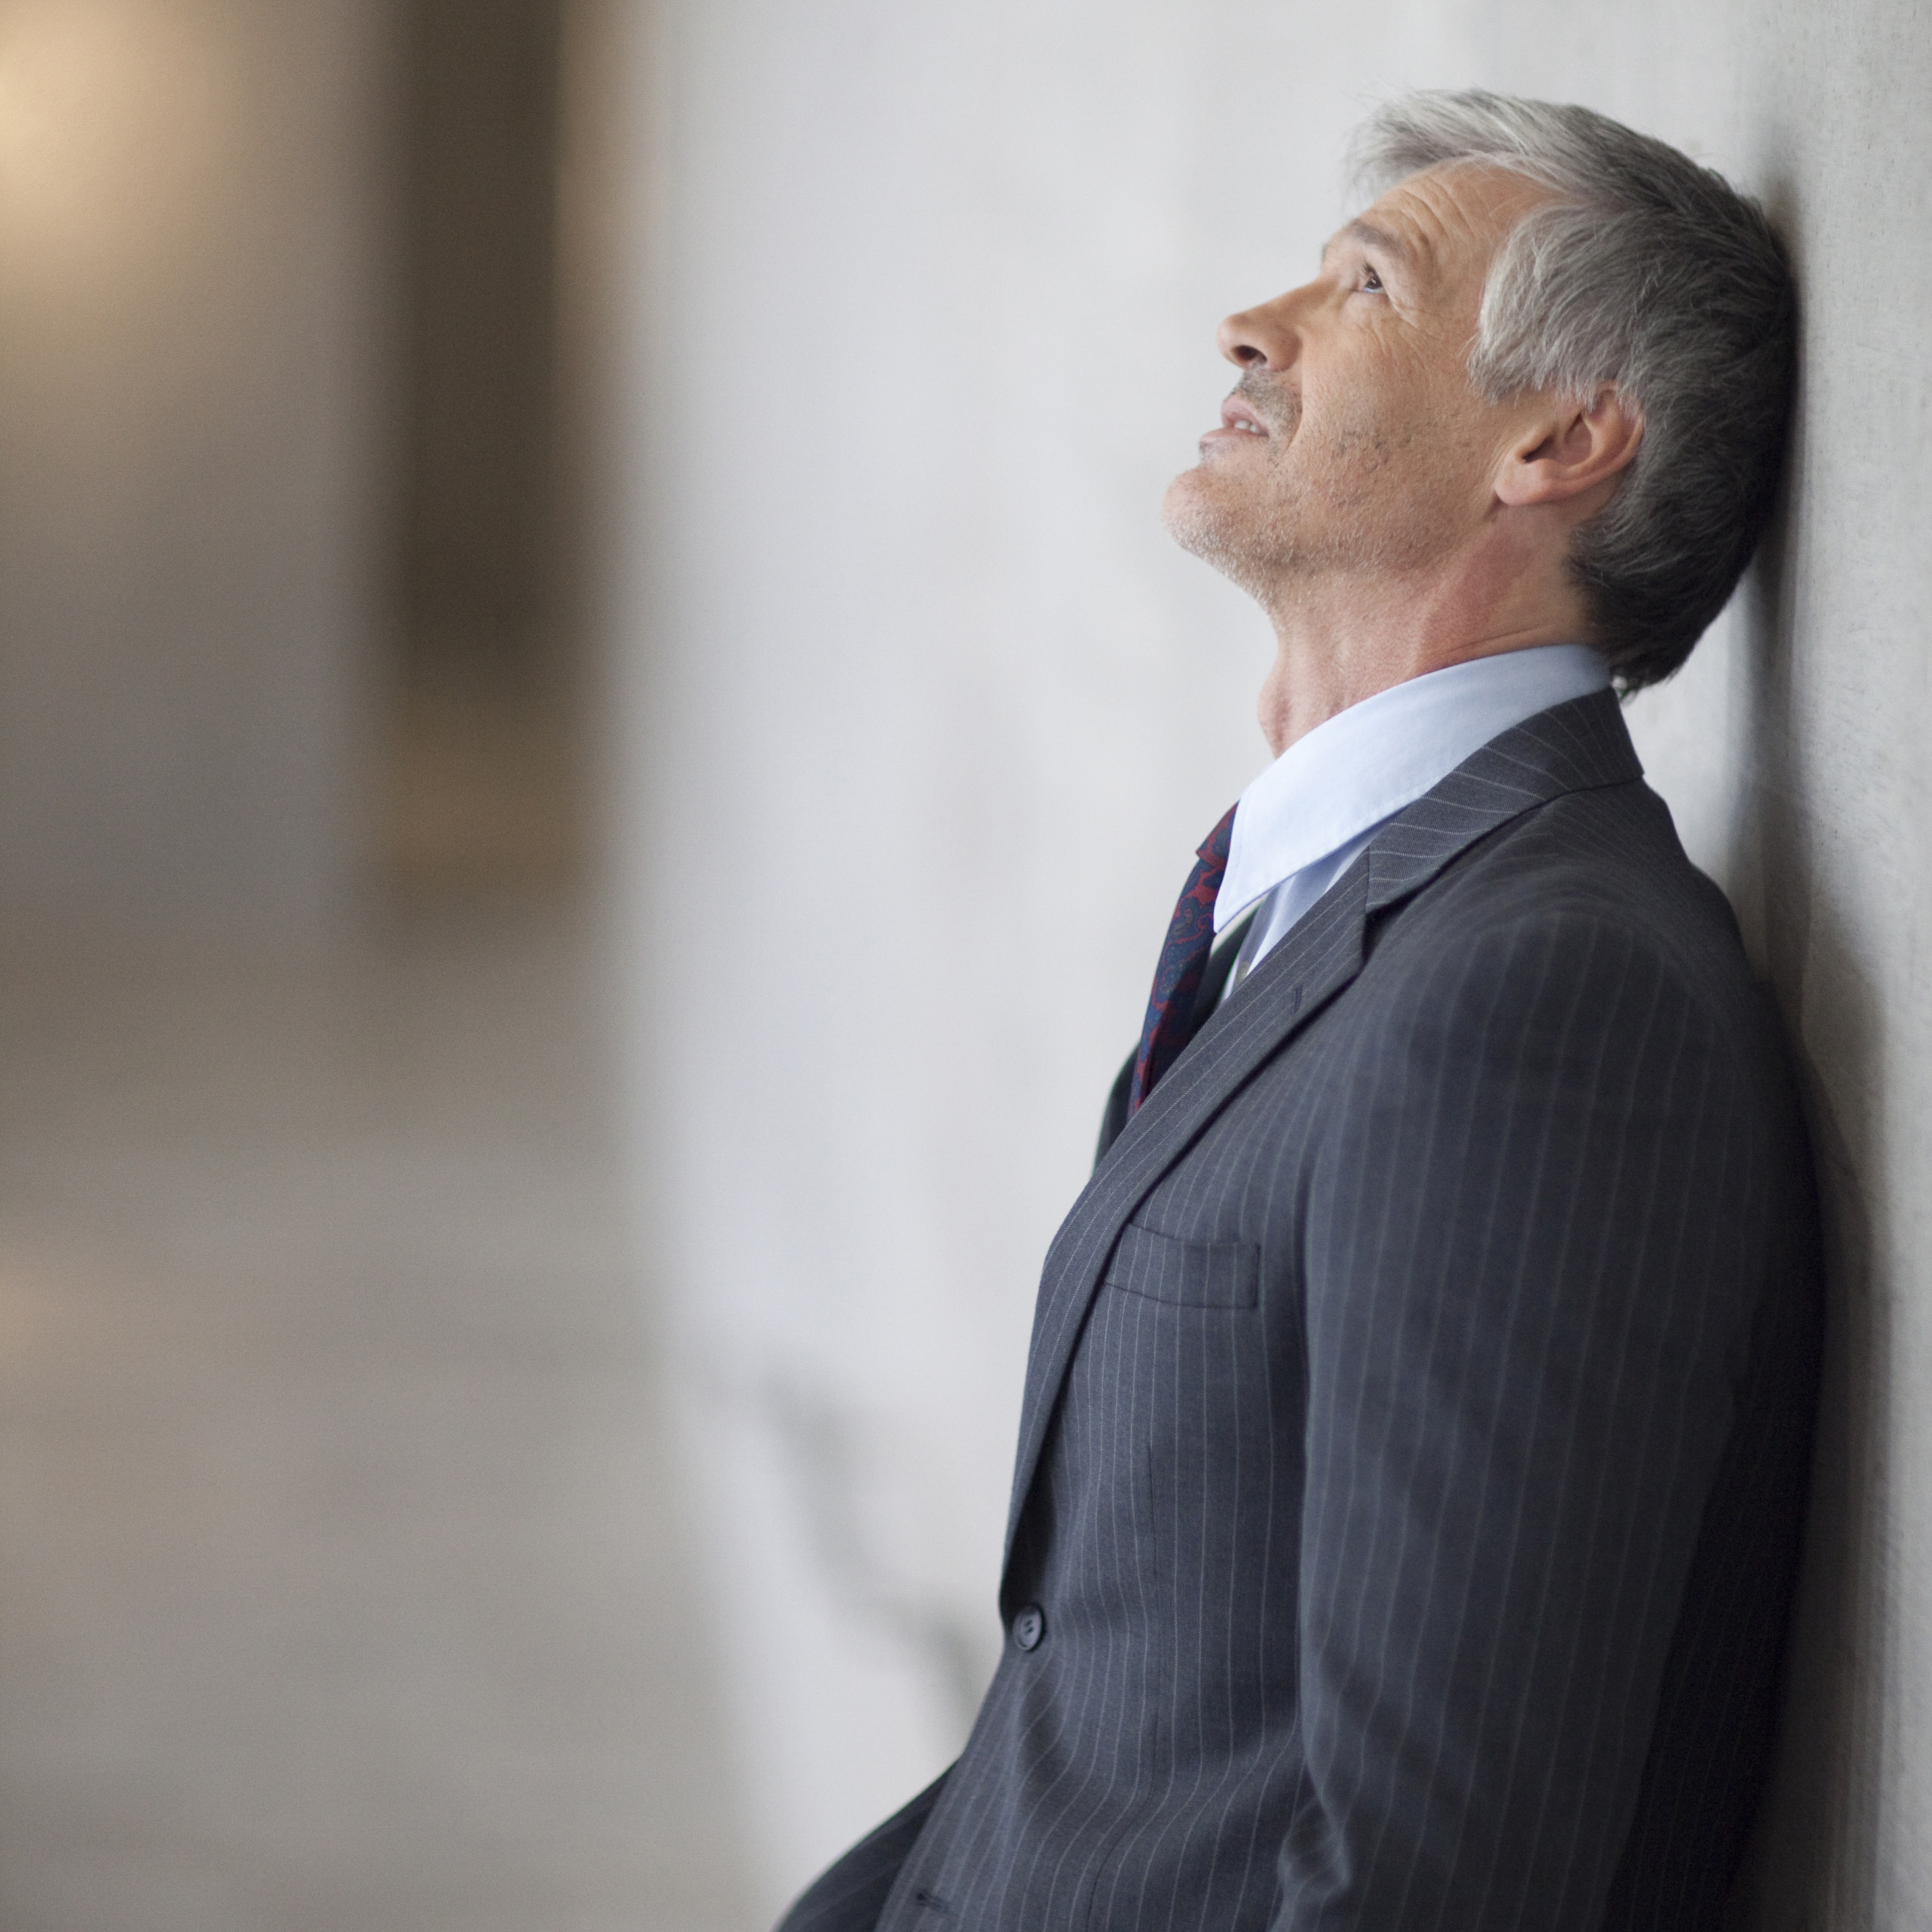 Avoiding the scary side effects of prostate drugs